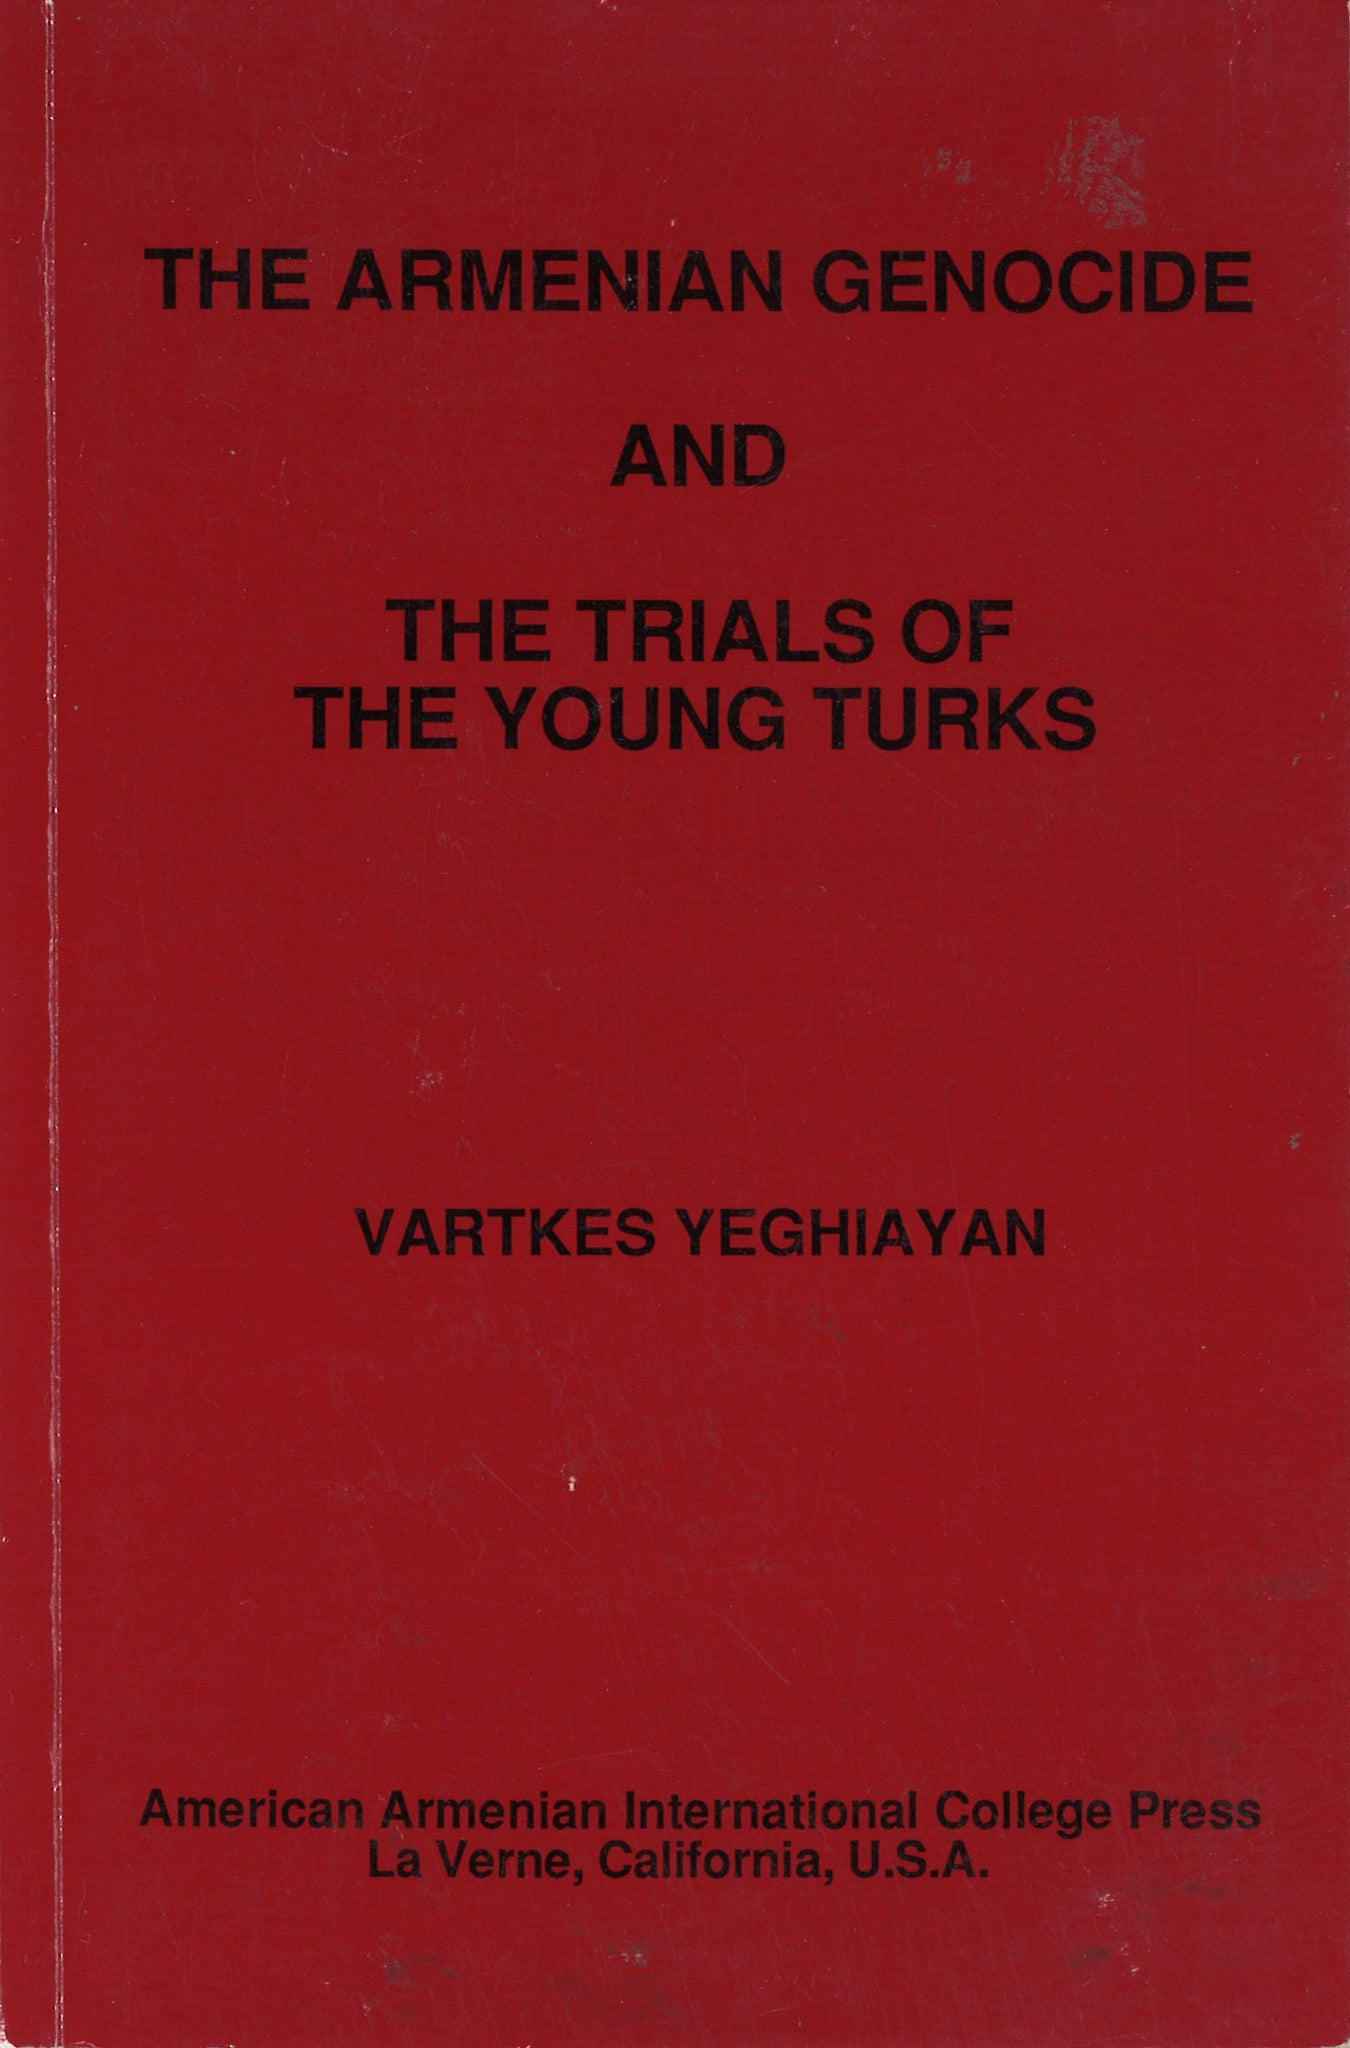 ARMENIAN GENOCIDE AND THE TRIALS OF THE YOUNG TURKS